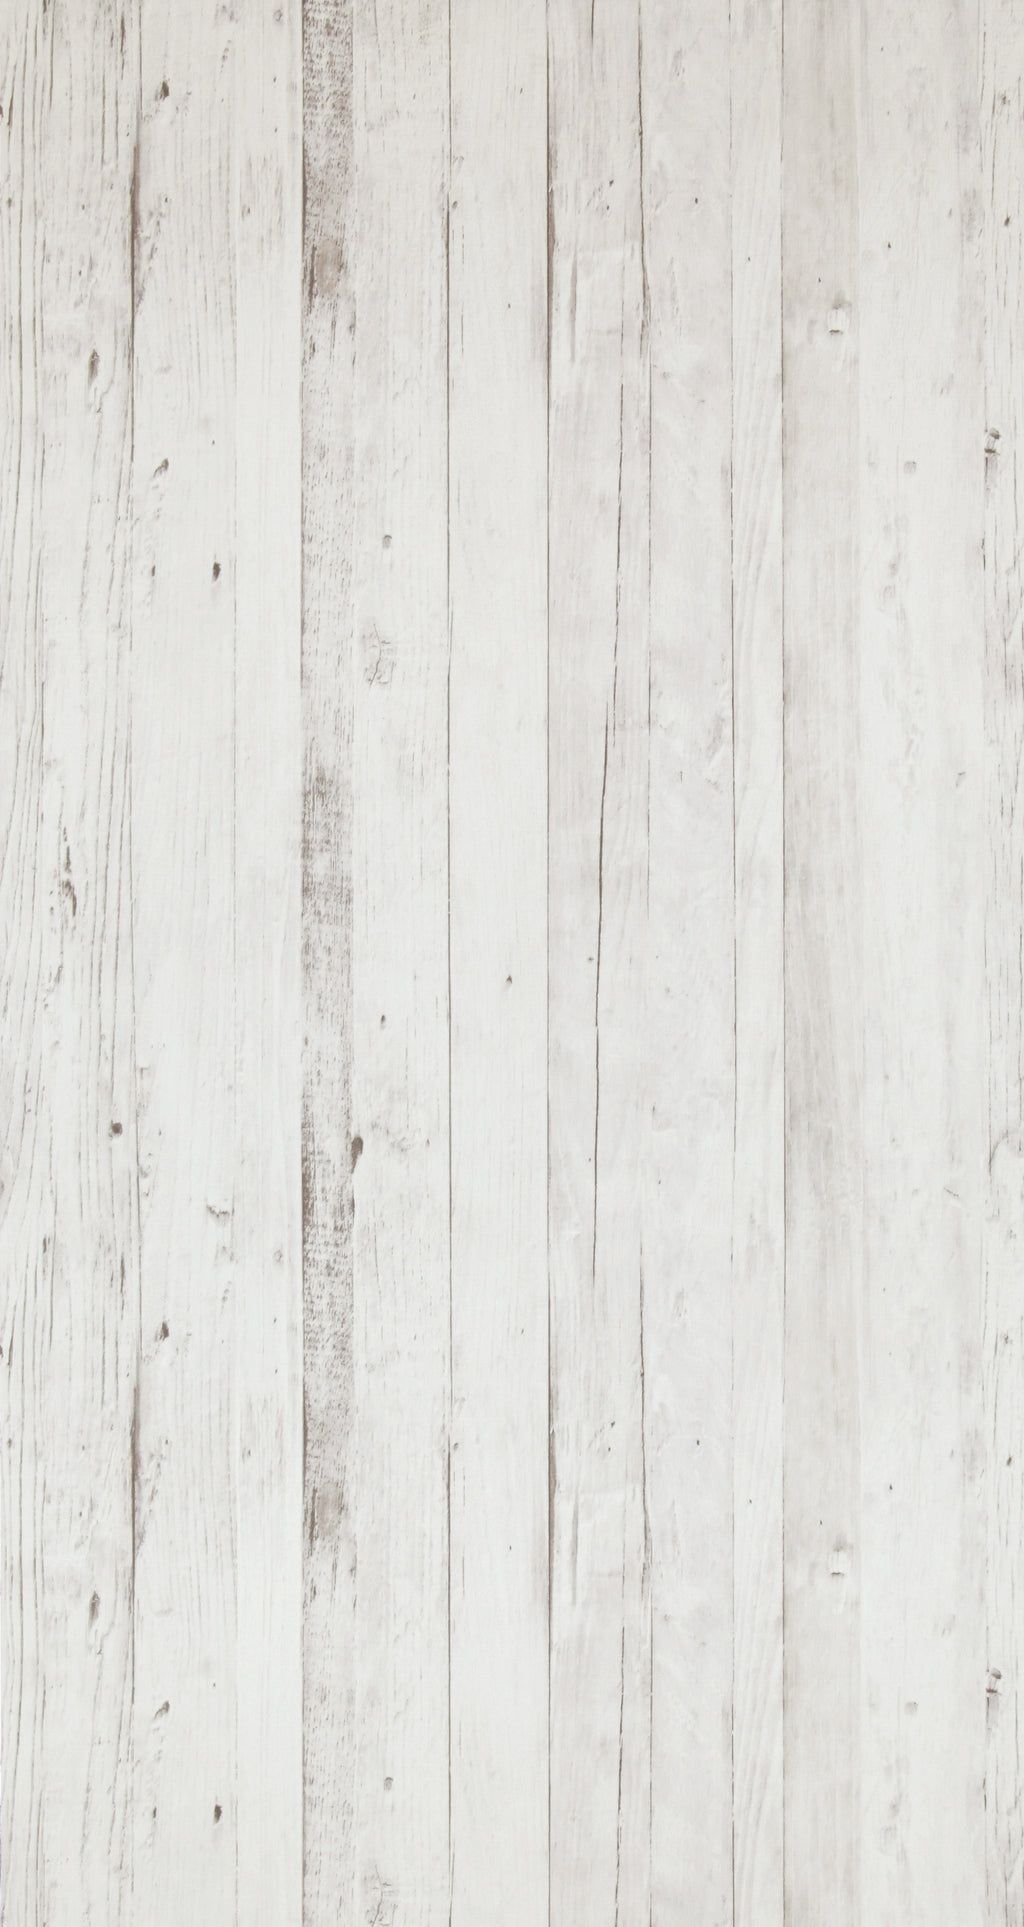 faux wood wallpaper.Faux Driftwood White Rustica Wallpaper R4332